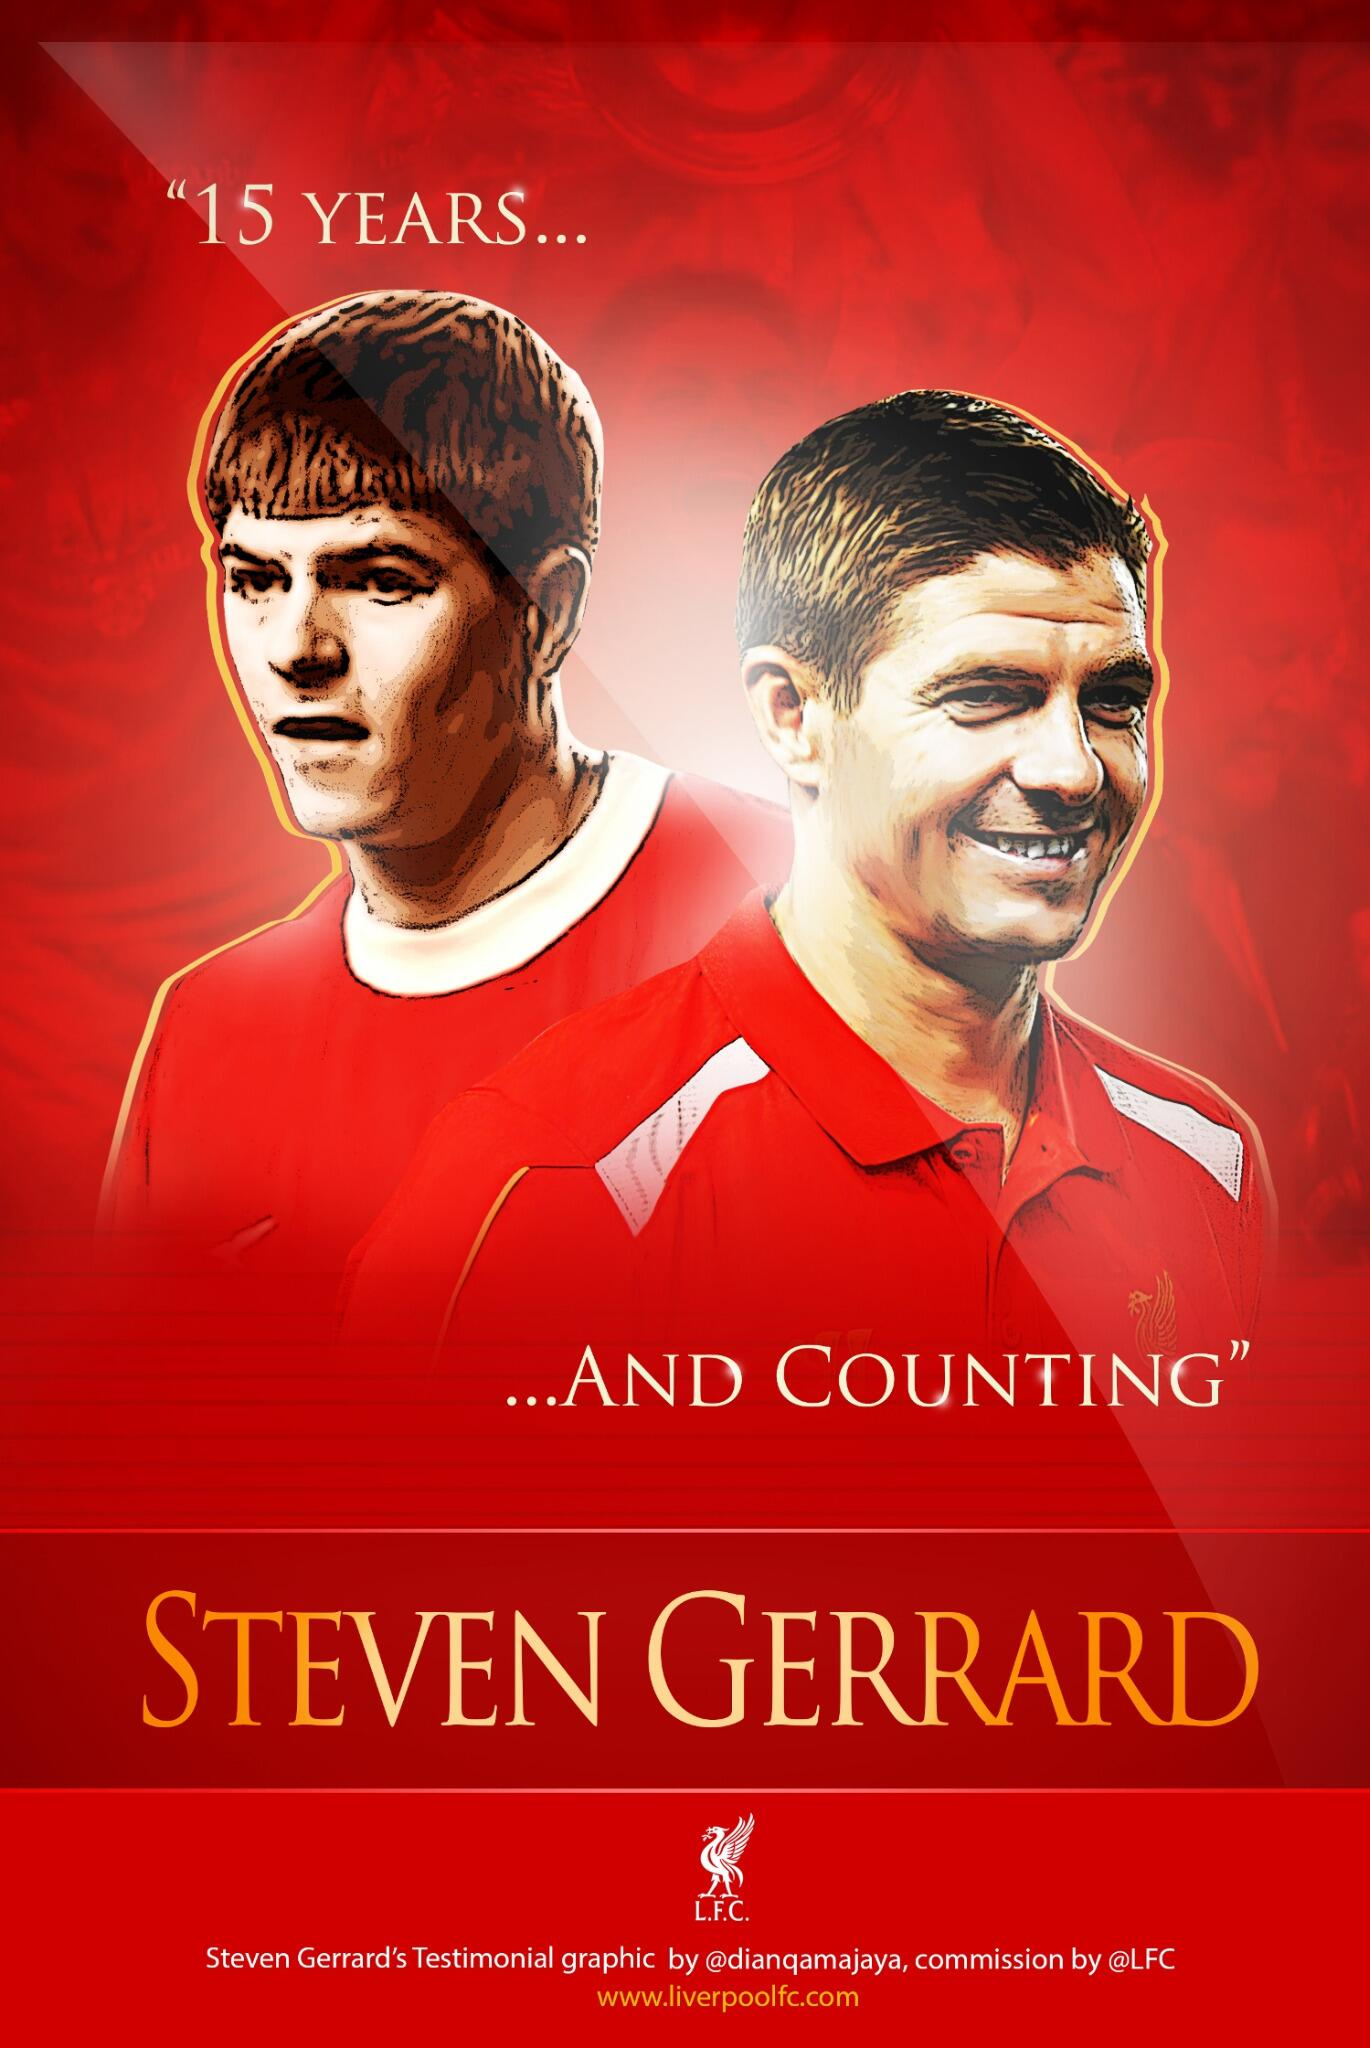 15 years and counting... #GerrardTestimonial http://t.co/EoCaD7MfMs